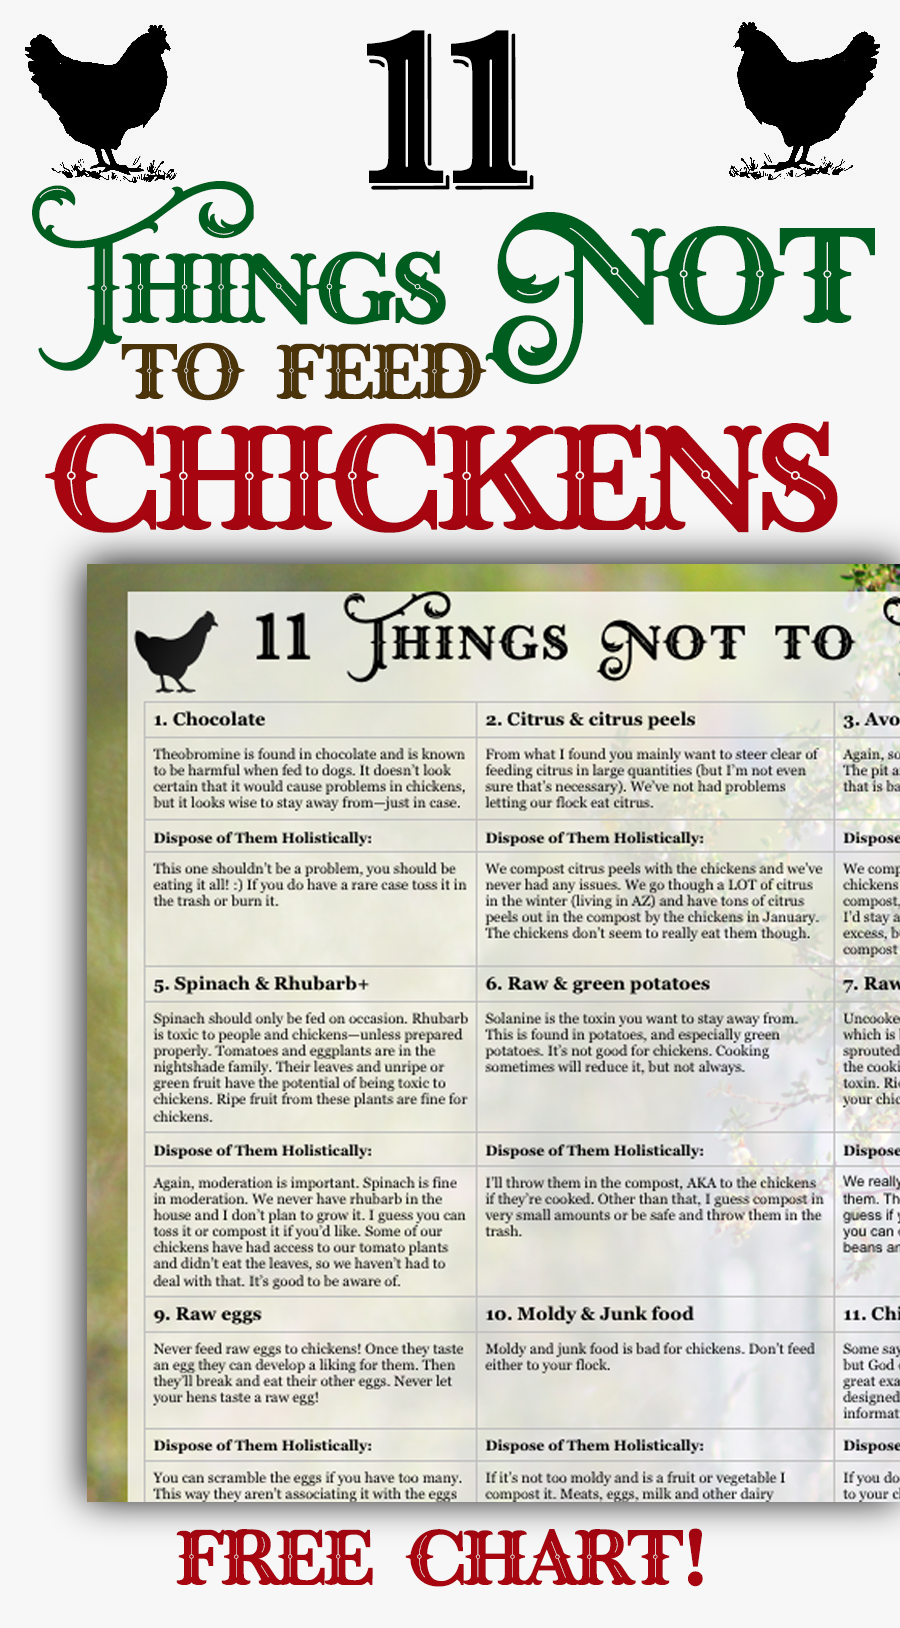 Learn which foods NOT to feed to your chickens with this free downloadable chart! Feeding and raising backyard chickens is easy, but you need to know which foods NOT to feed chickens.